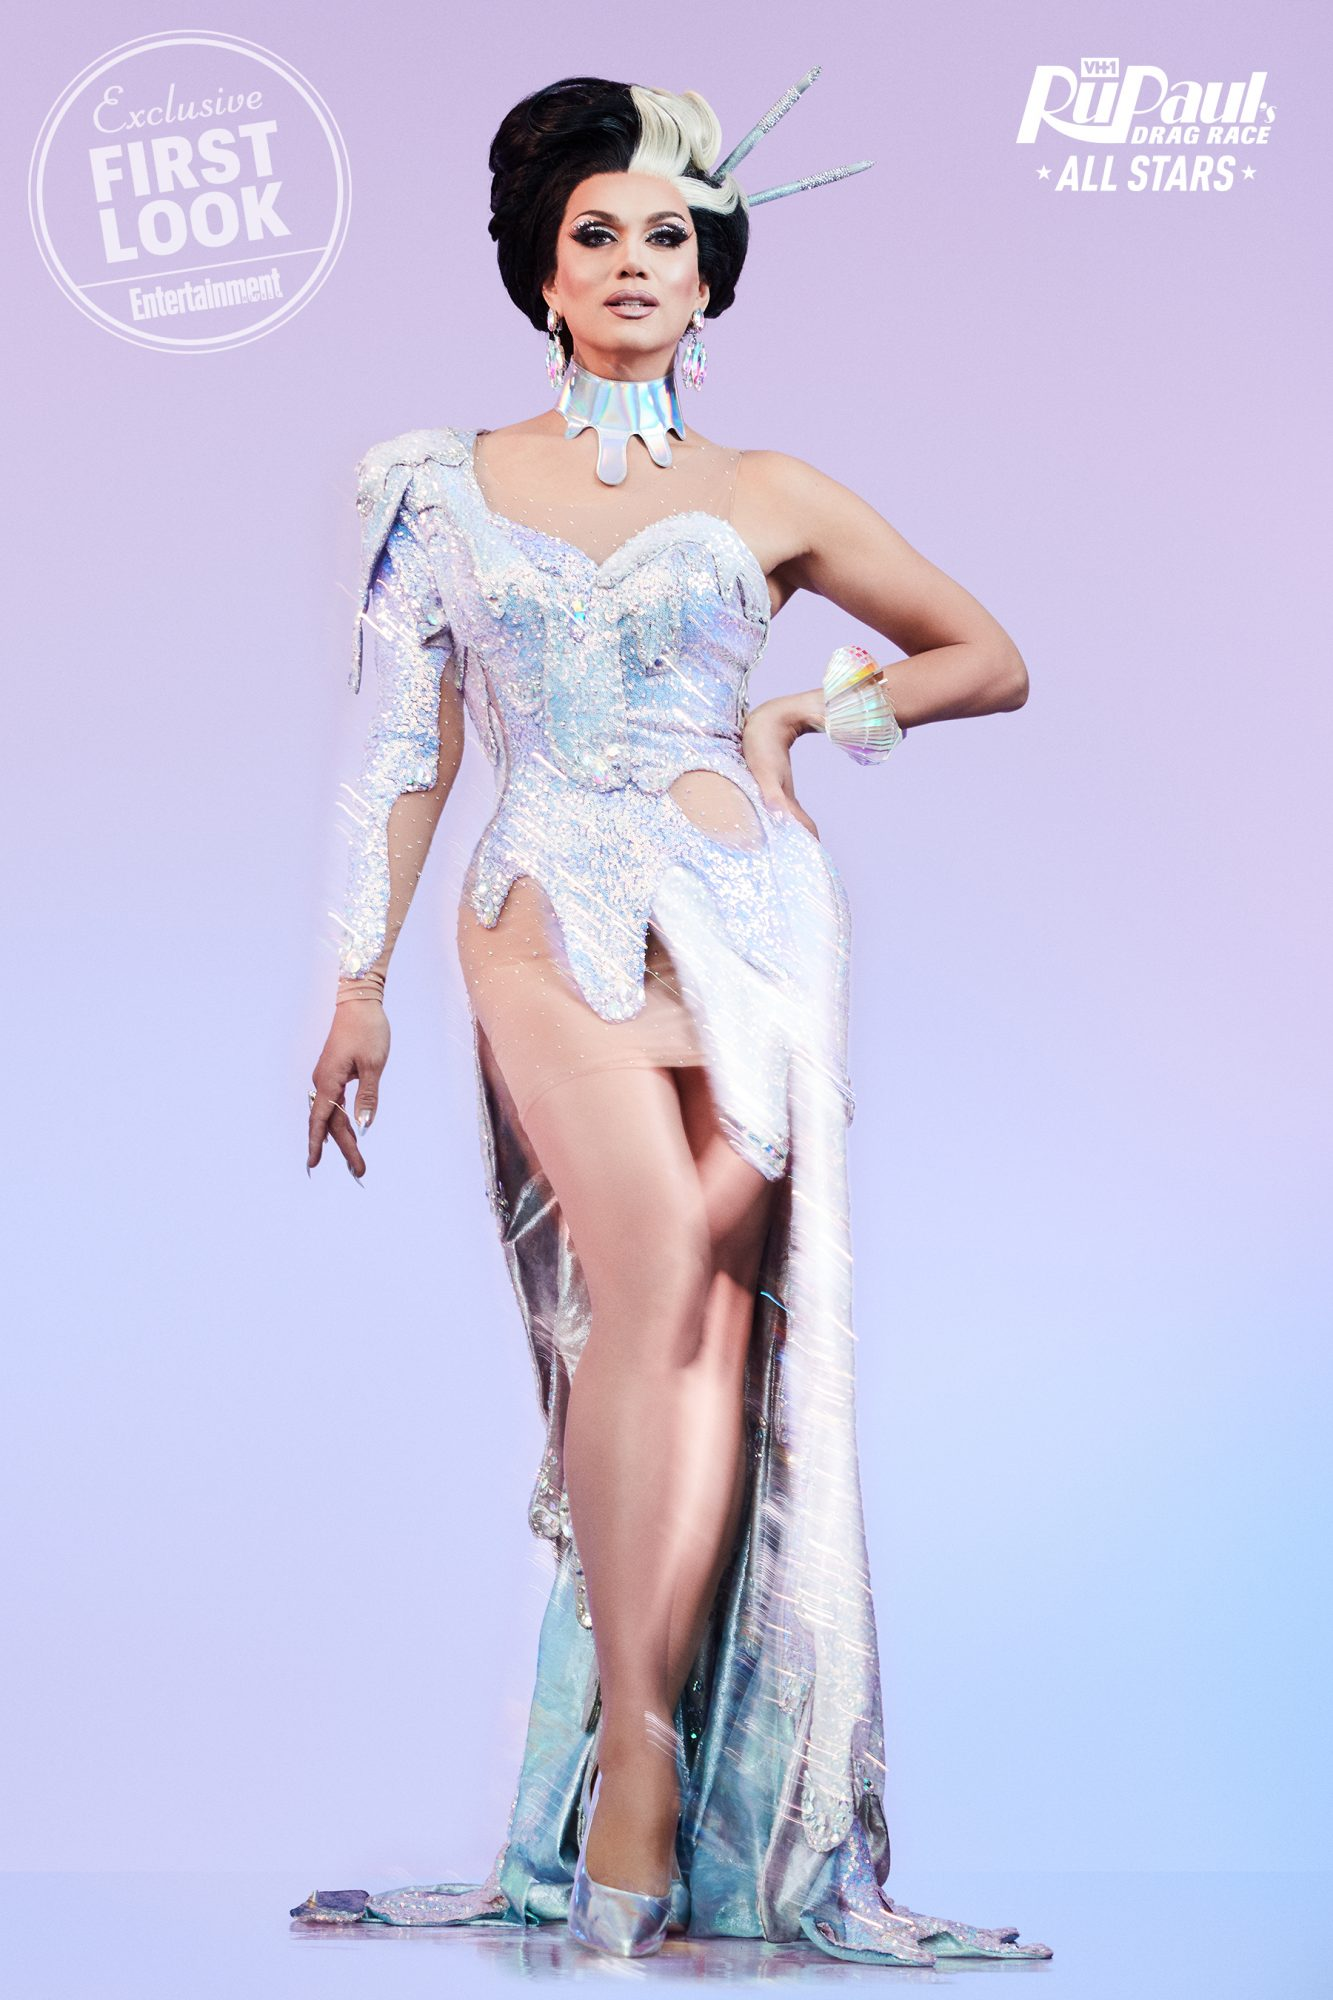 Manila Luzon (Season 3, 2nd place)